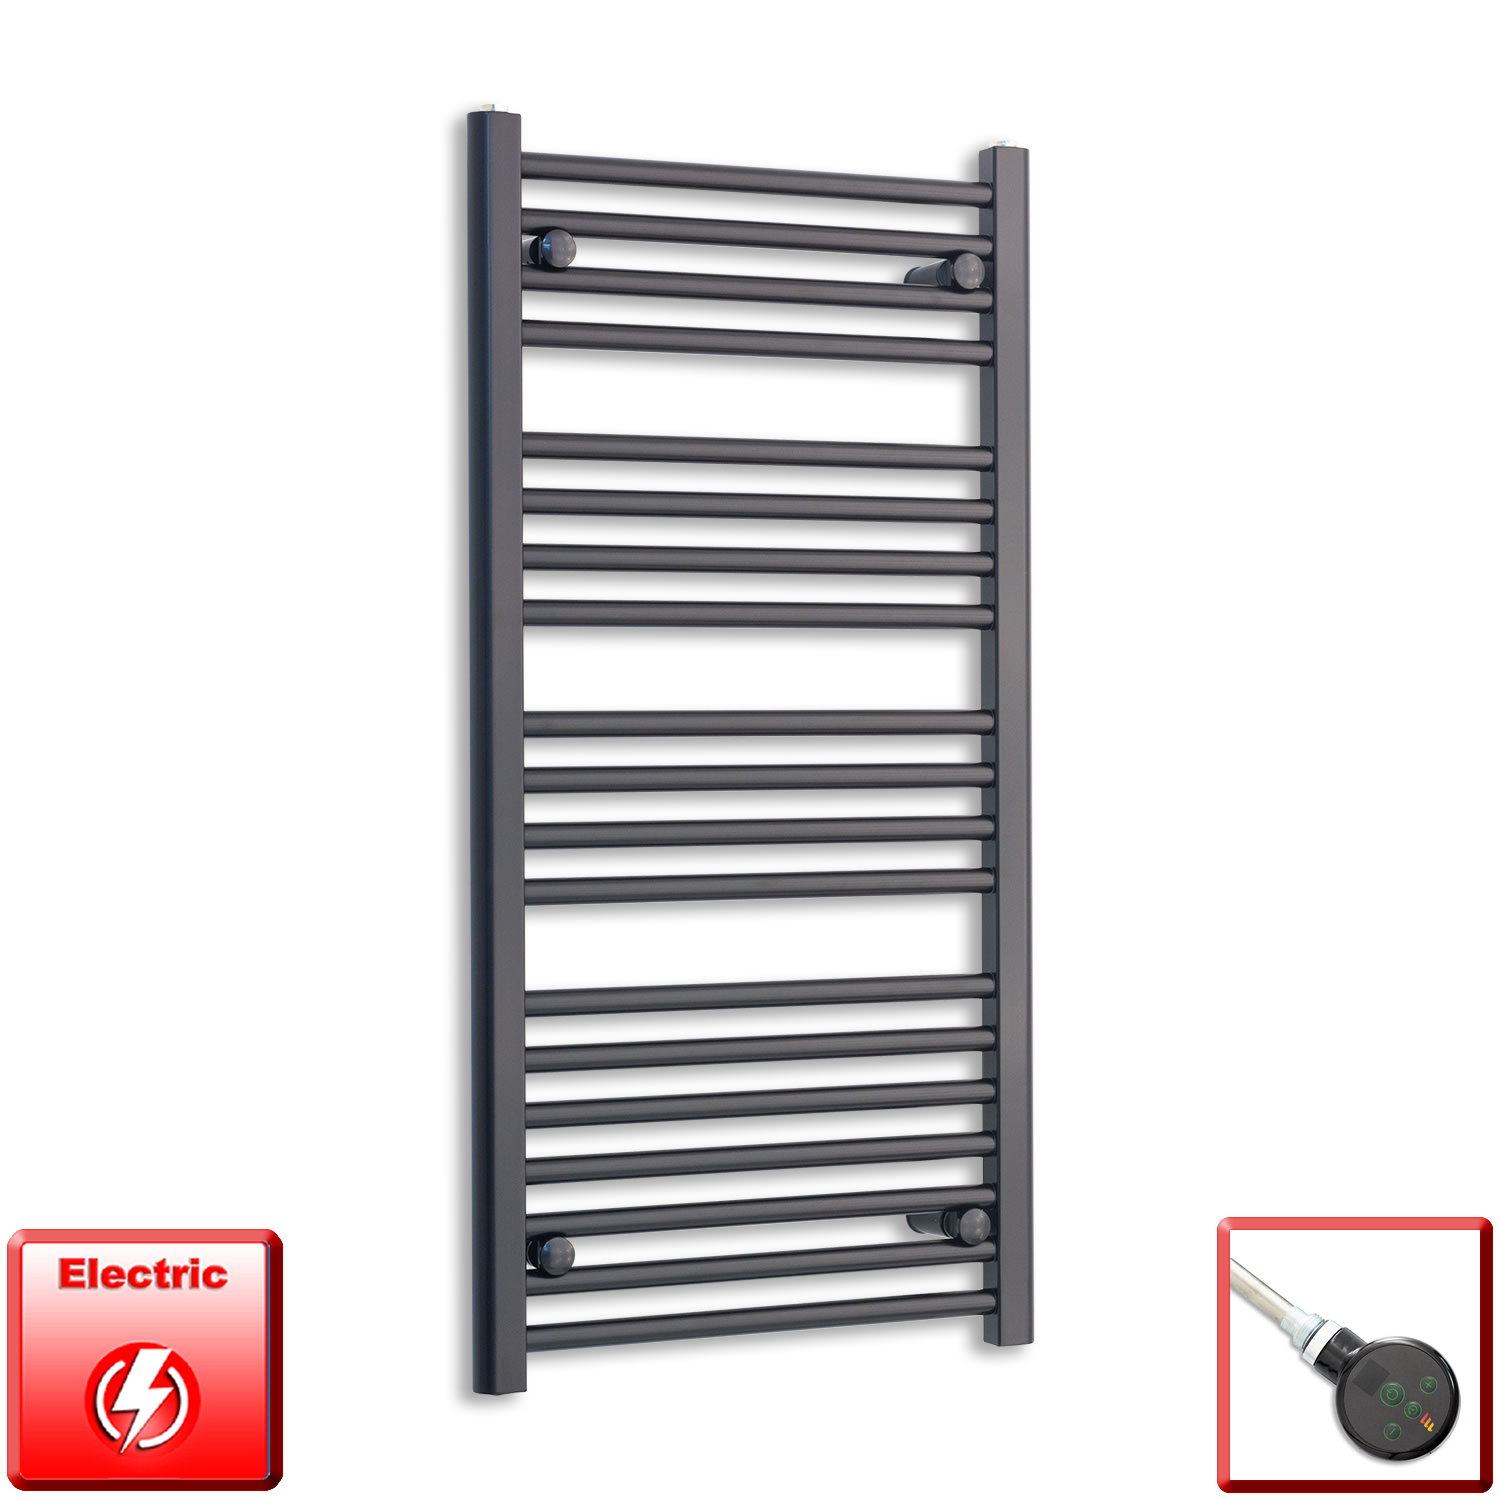 600mm Wide 1000mm High Flat Black Pre-Filled Electric Heated Towel Rail Radiator HTR,DIGI Thermostatic